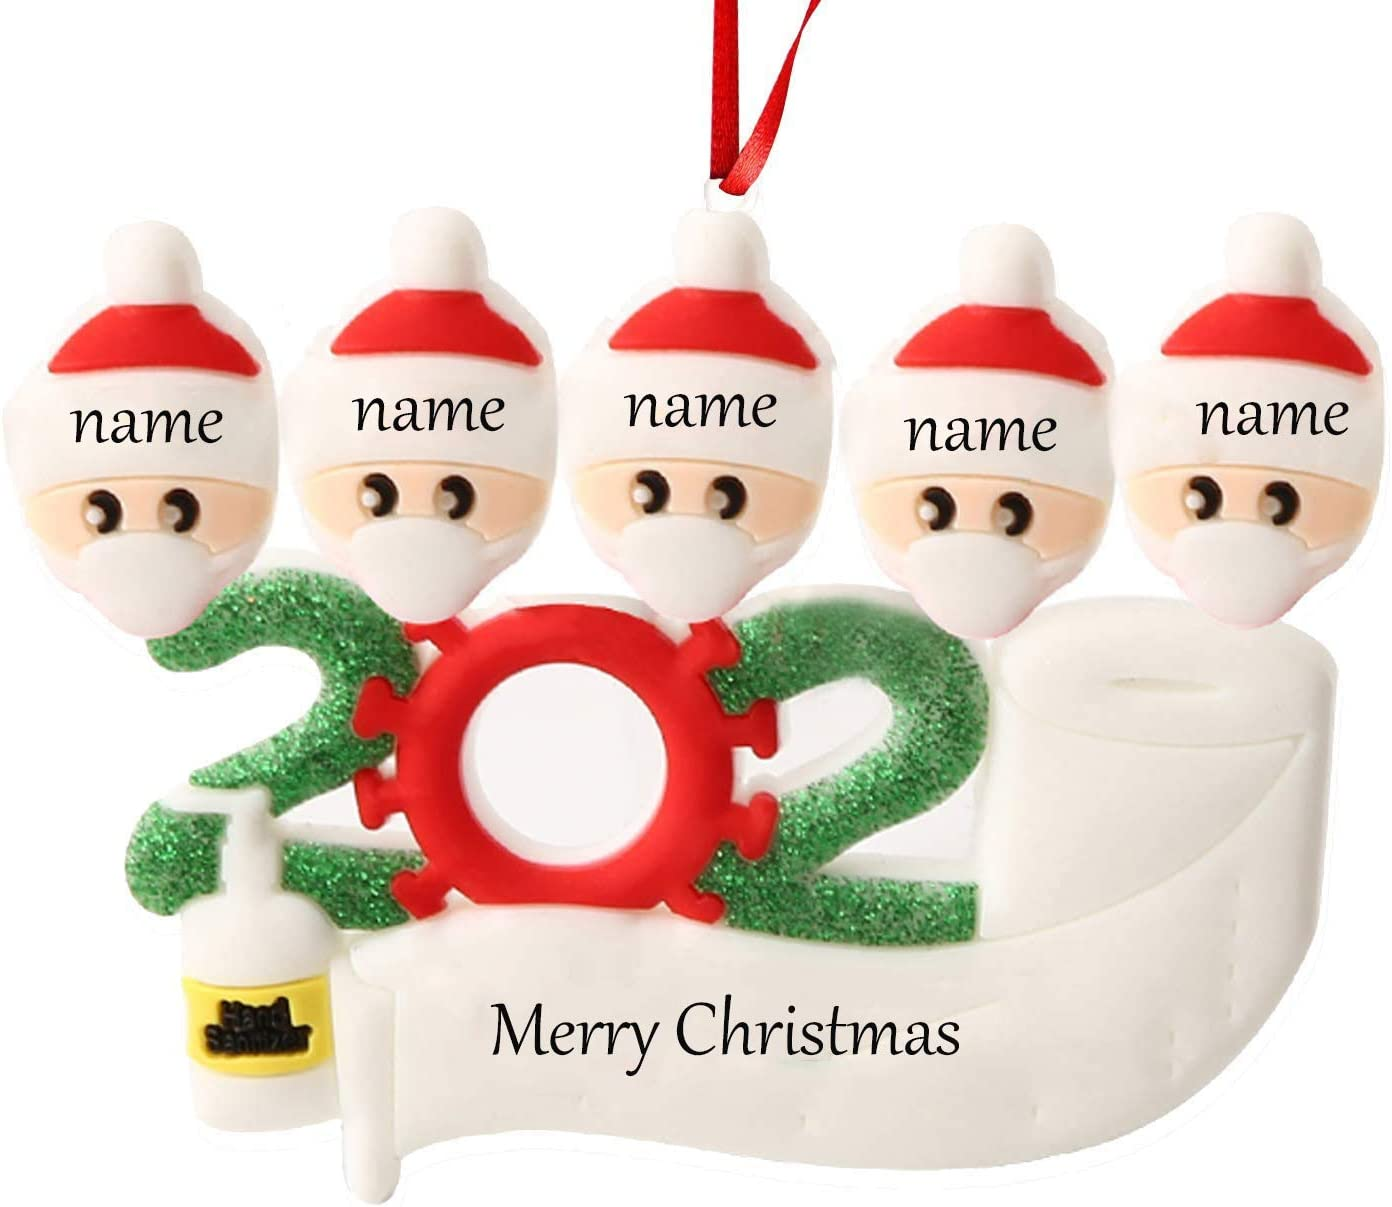 2020 Christmas Ornament Decorations Newest Theme Creative Gift Tree Ornament Kit Hanging Accessories for Home Indoor Outdoor (Family of 5)